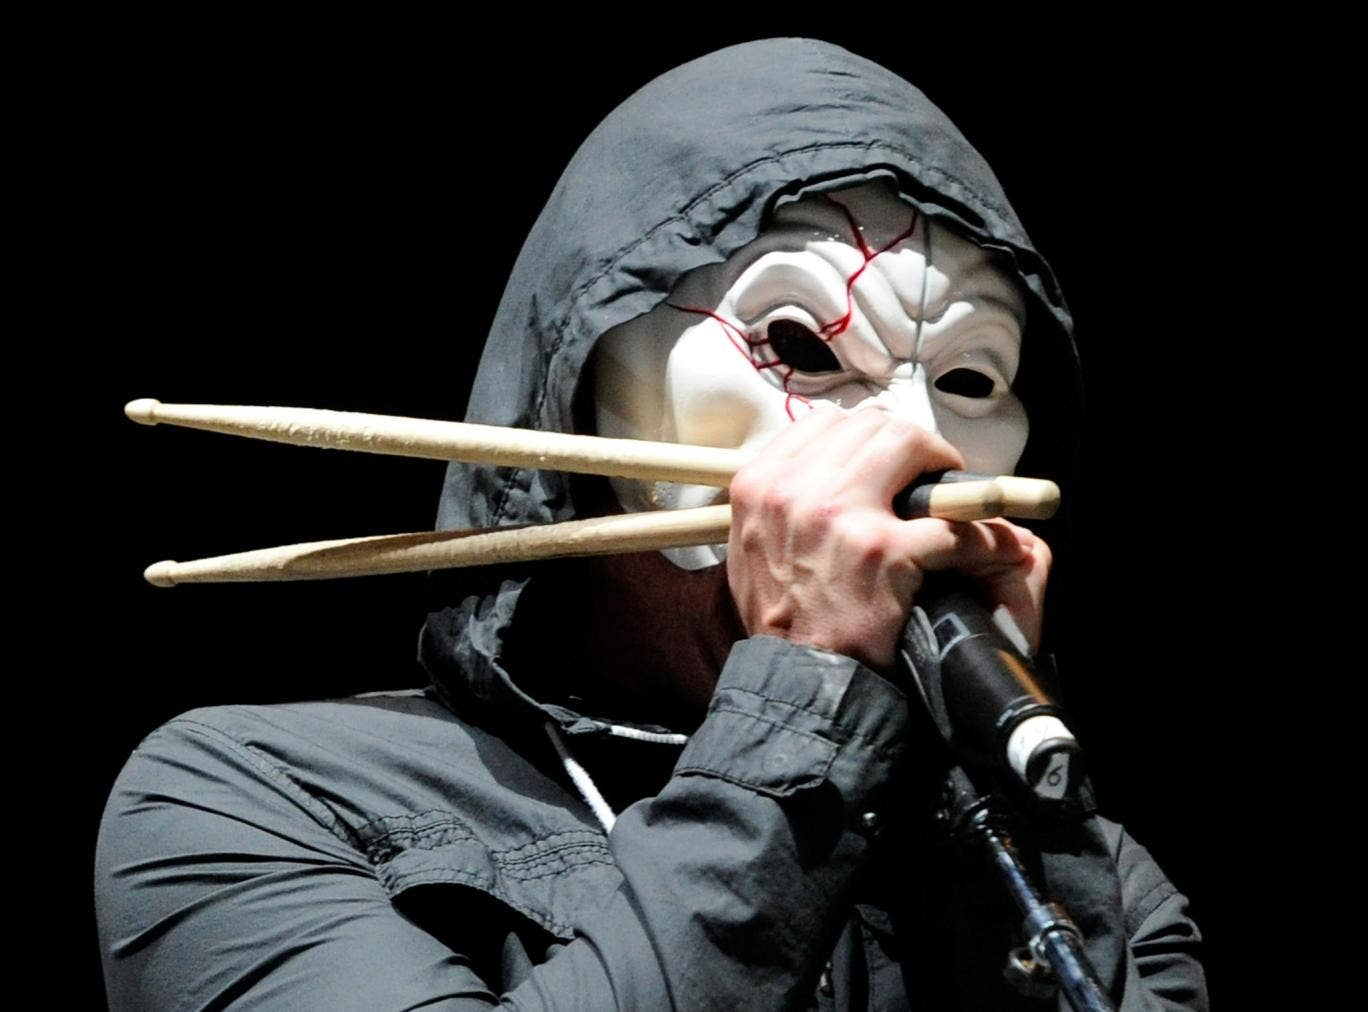 Da Kurlzz of Hollywood Undead. Scuzz TV was £10,000 for broadcasting one of the band's videos before 9pm.